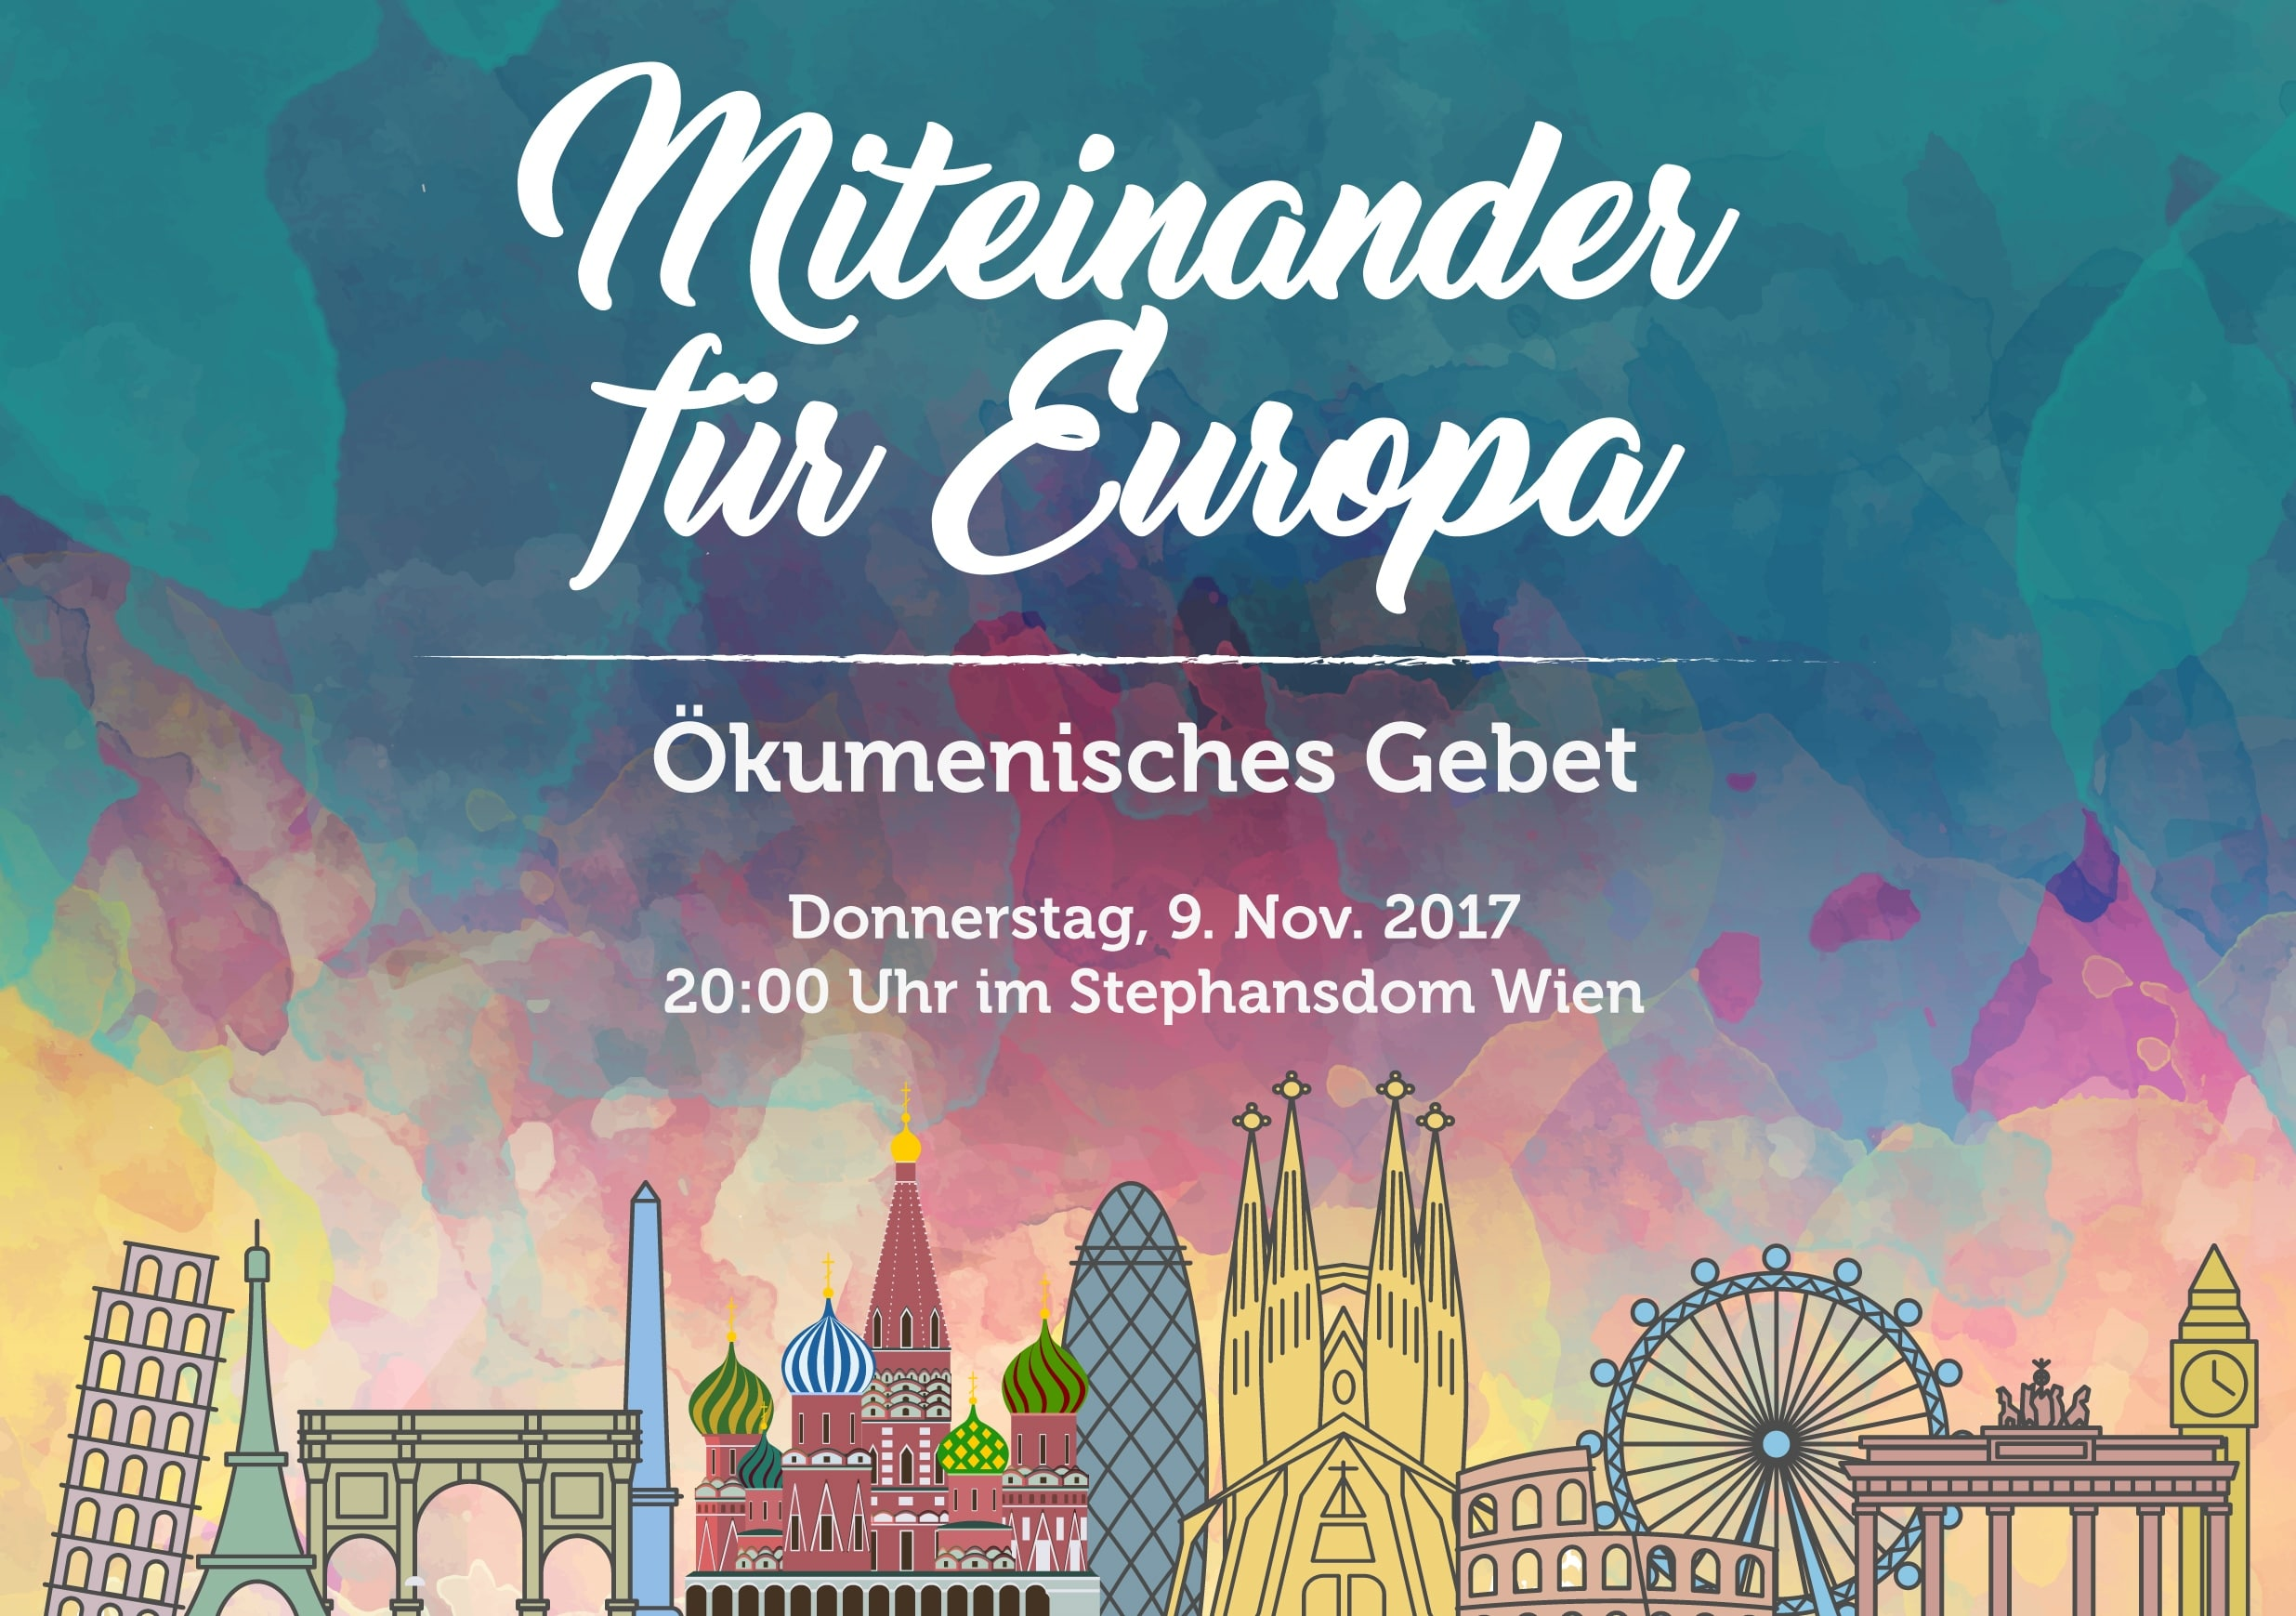 Ökumenisches Gebet für Europa am 9. November 2017 im Stephansdom in Wien (Grafik: together4europe.org)